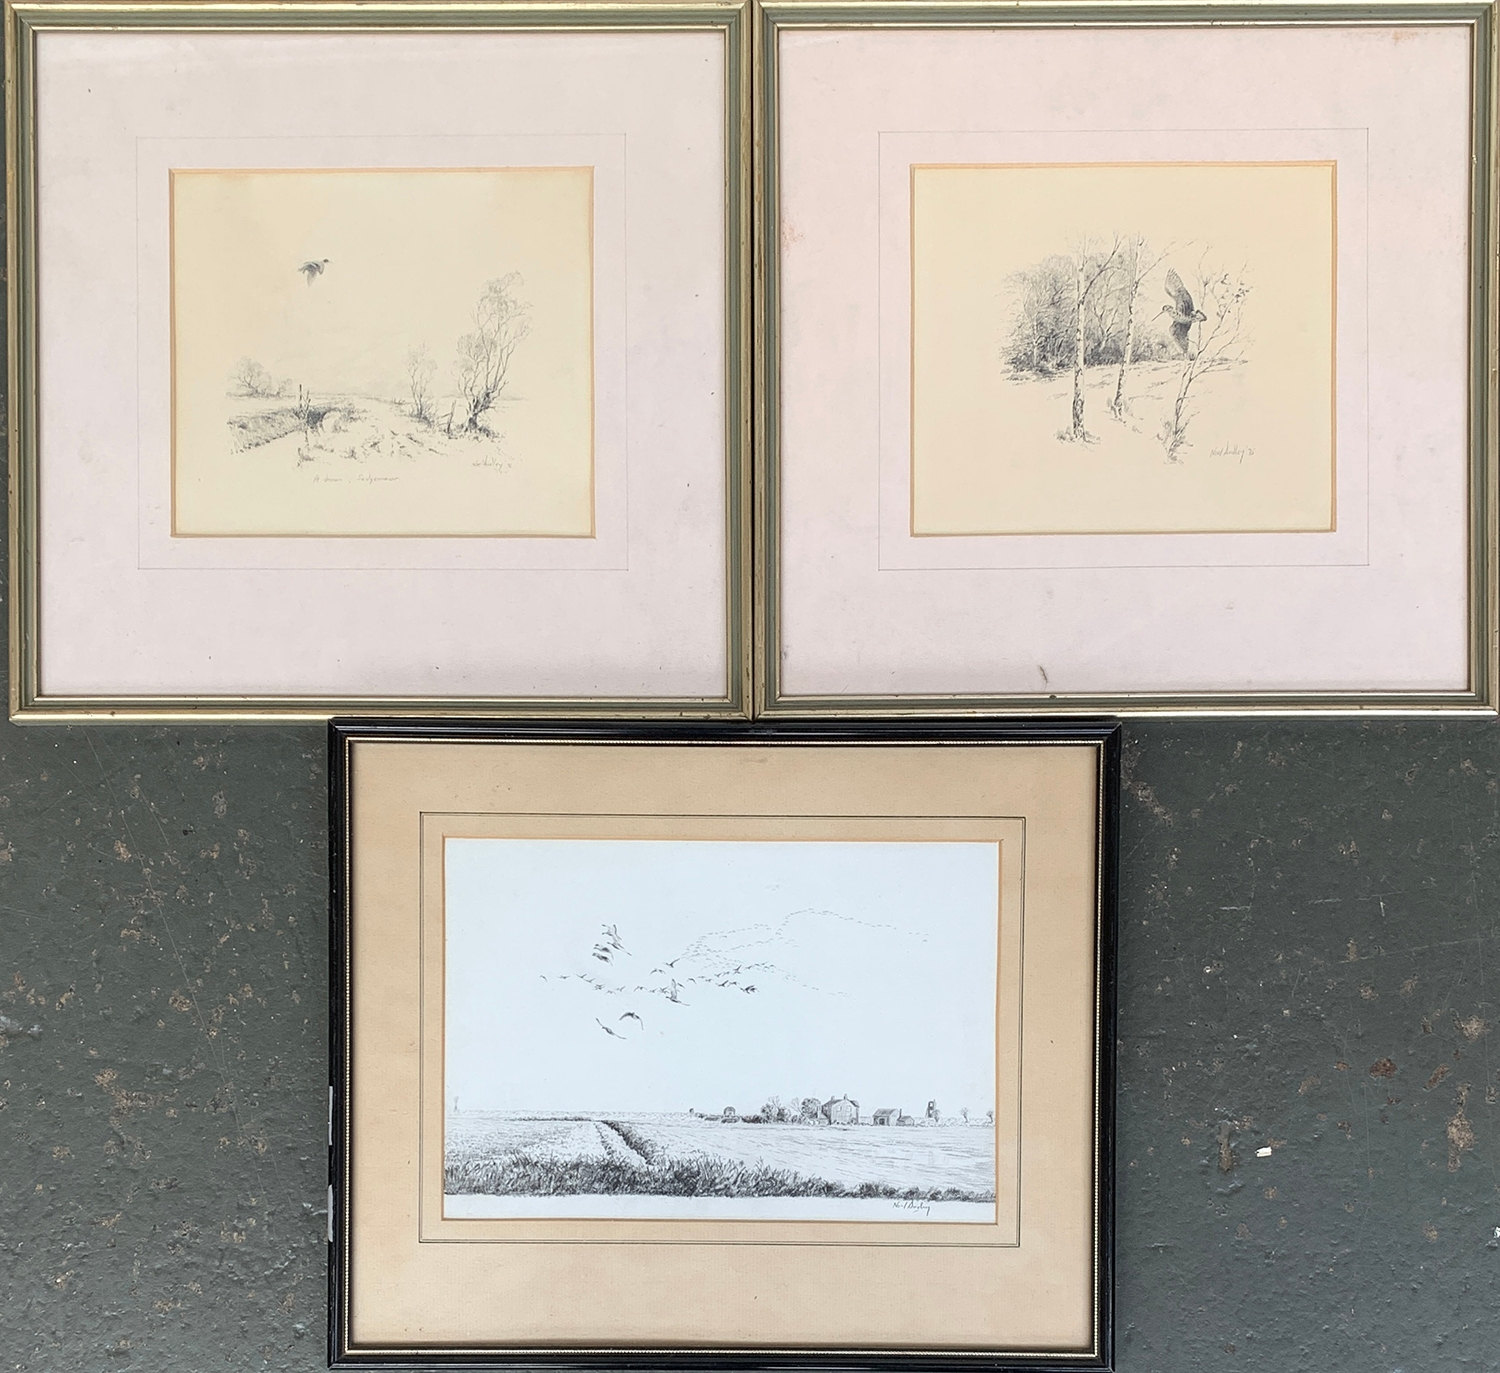 Noel Dudley (1896-1975), pencil sketches 'A Dream - Sedgemoor' (duck in flight), and woodcock in